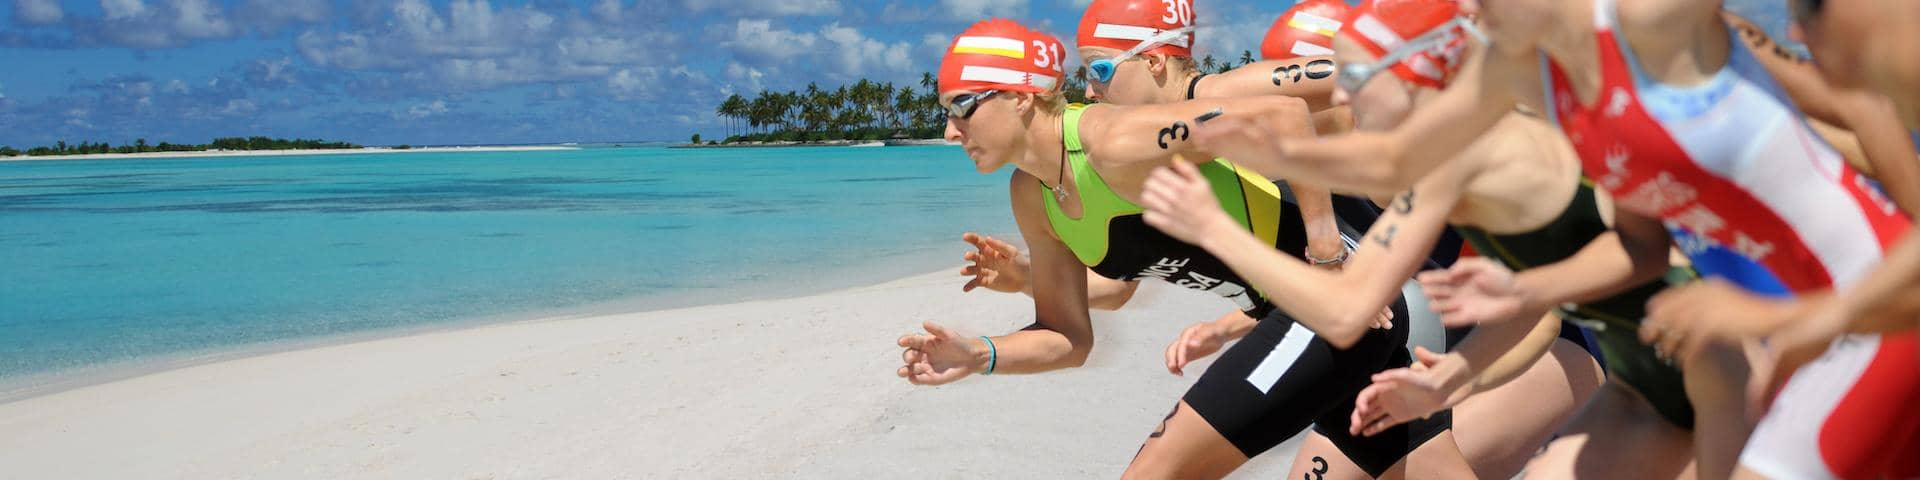 Special Product Triathlon Beach Swimming Sport